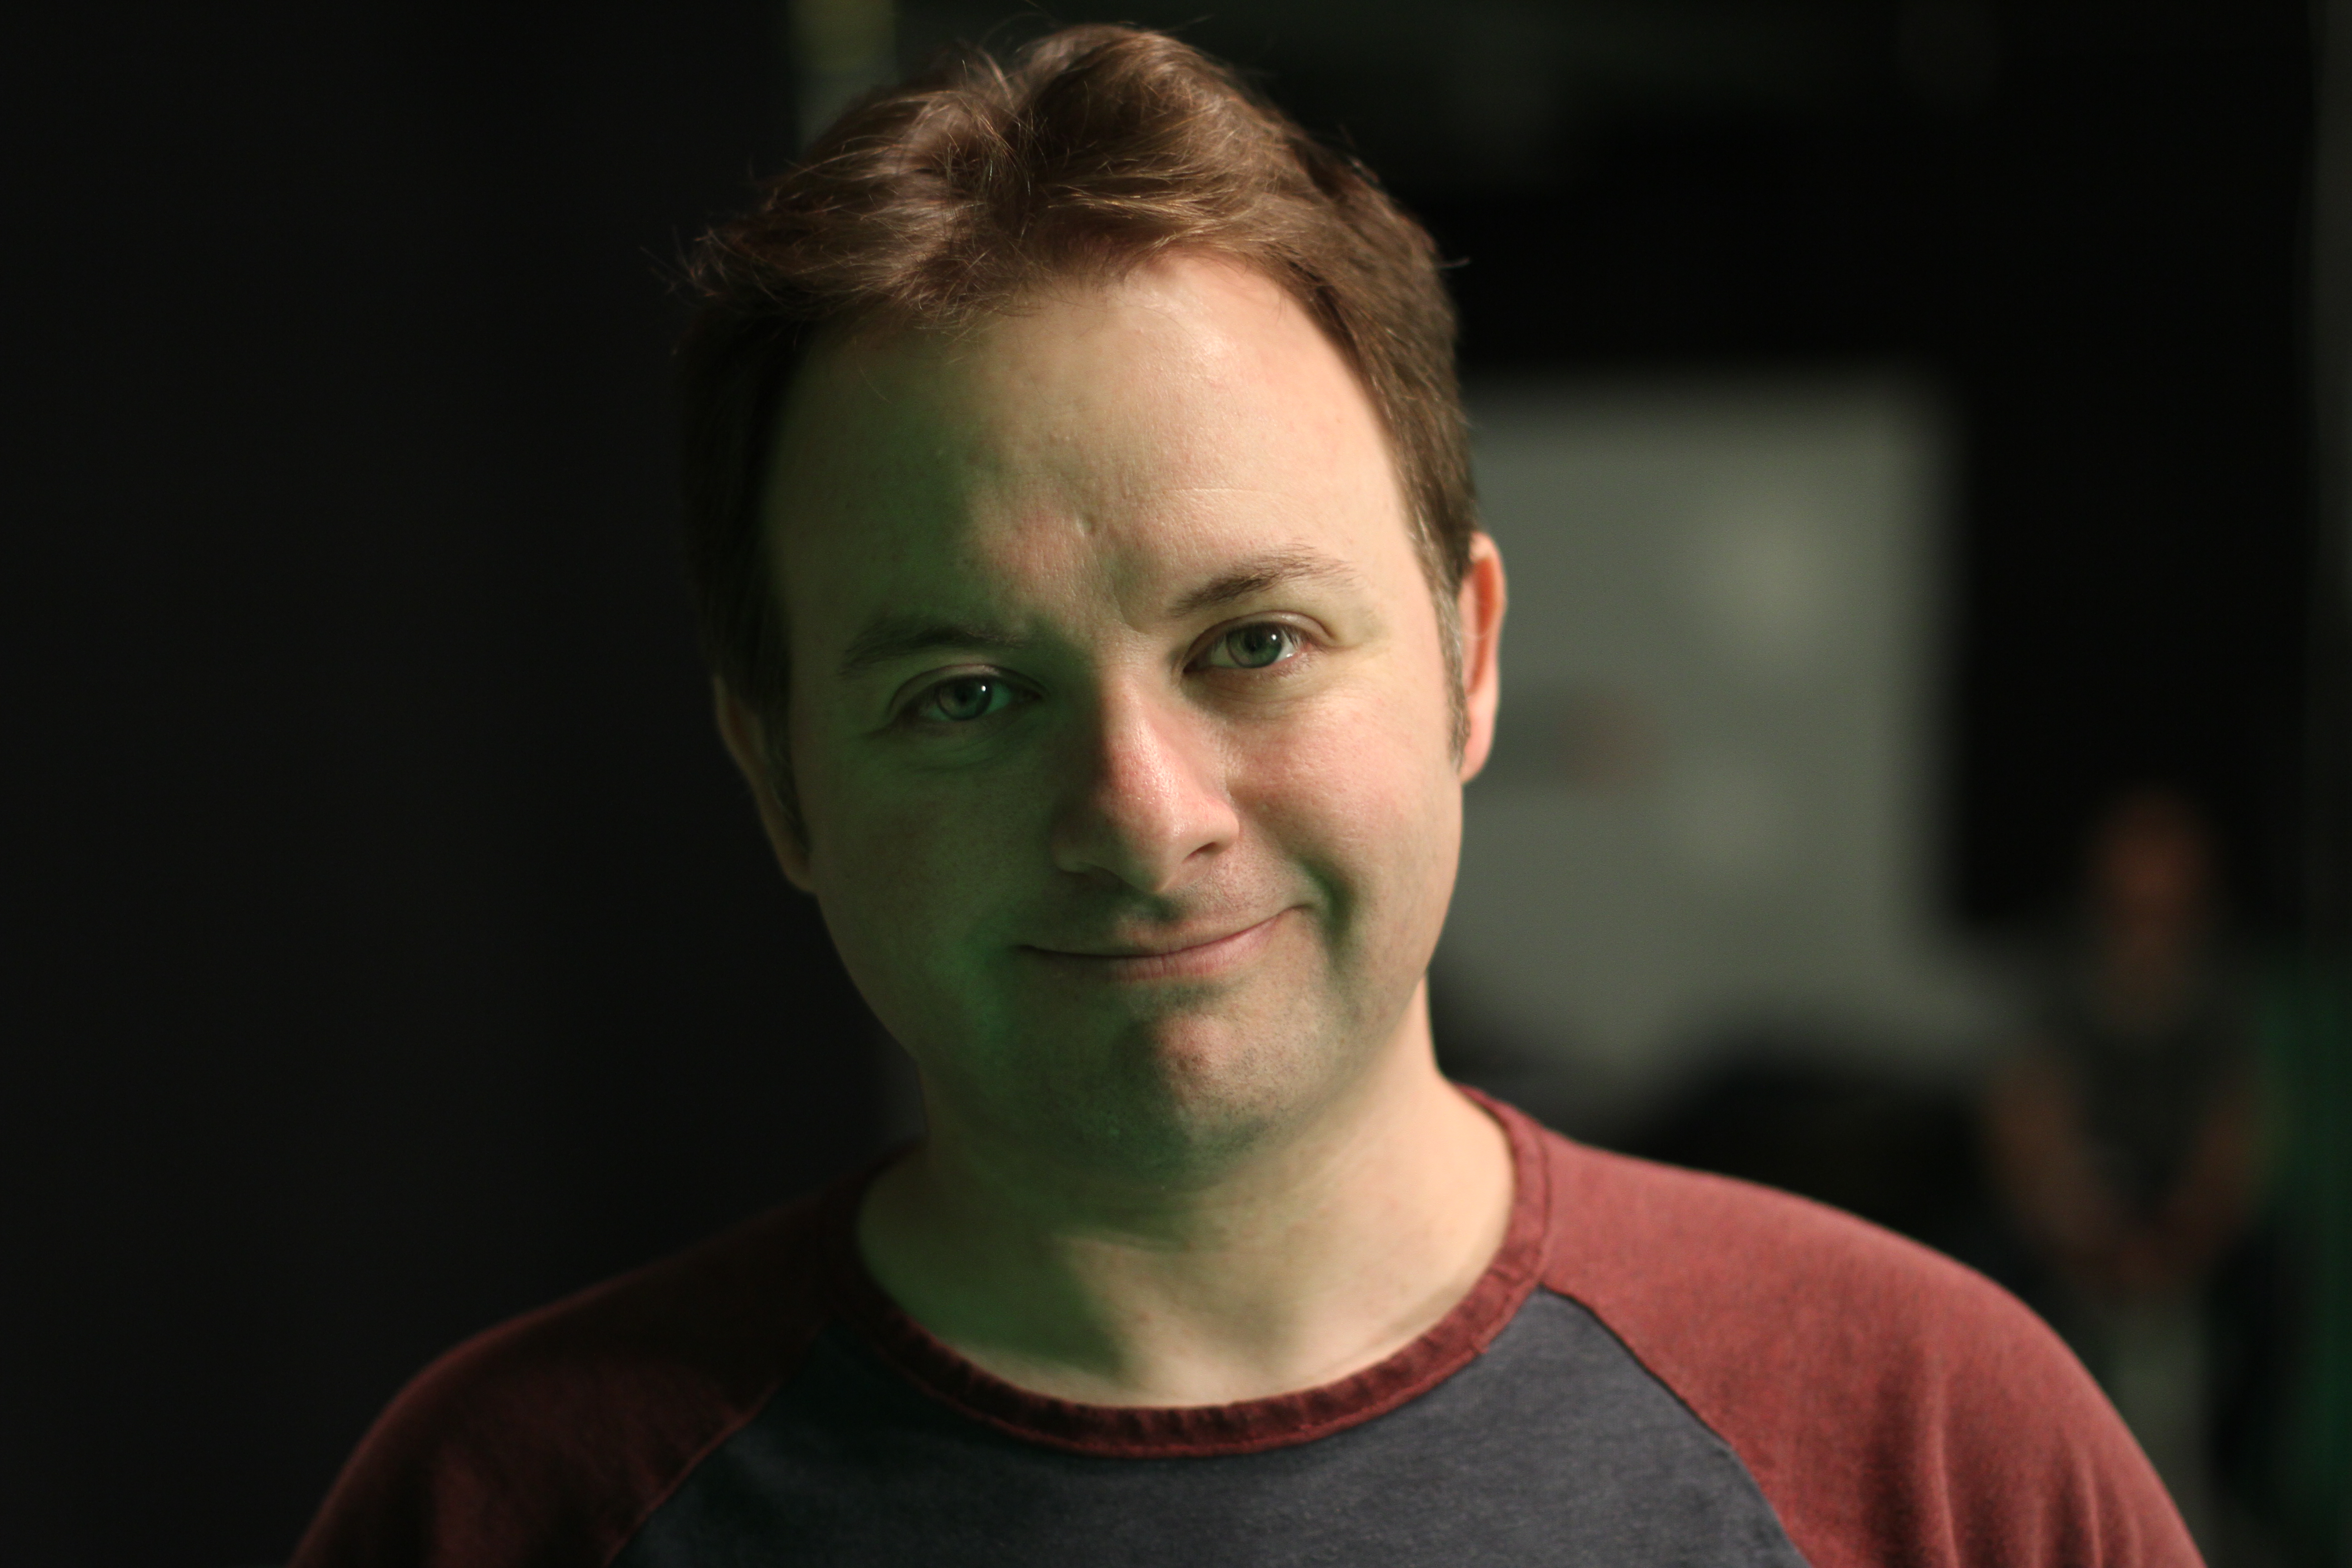 David Jaffe